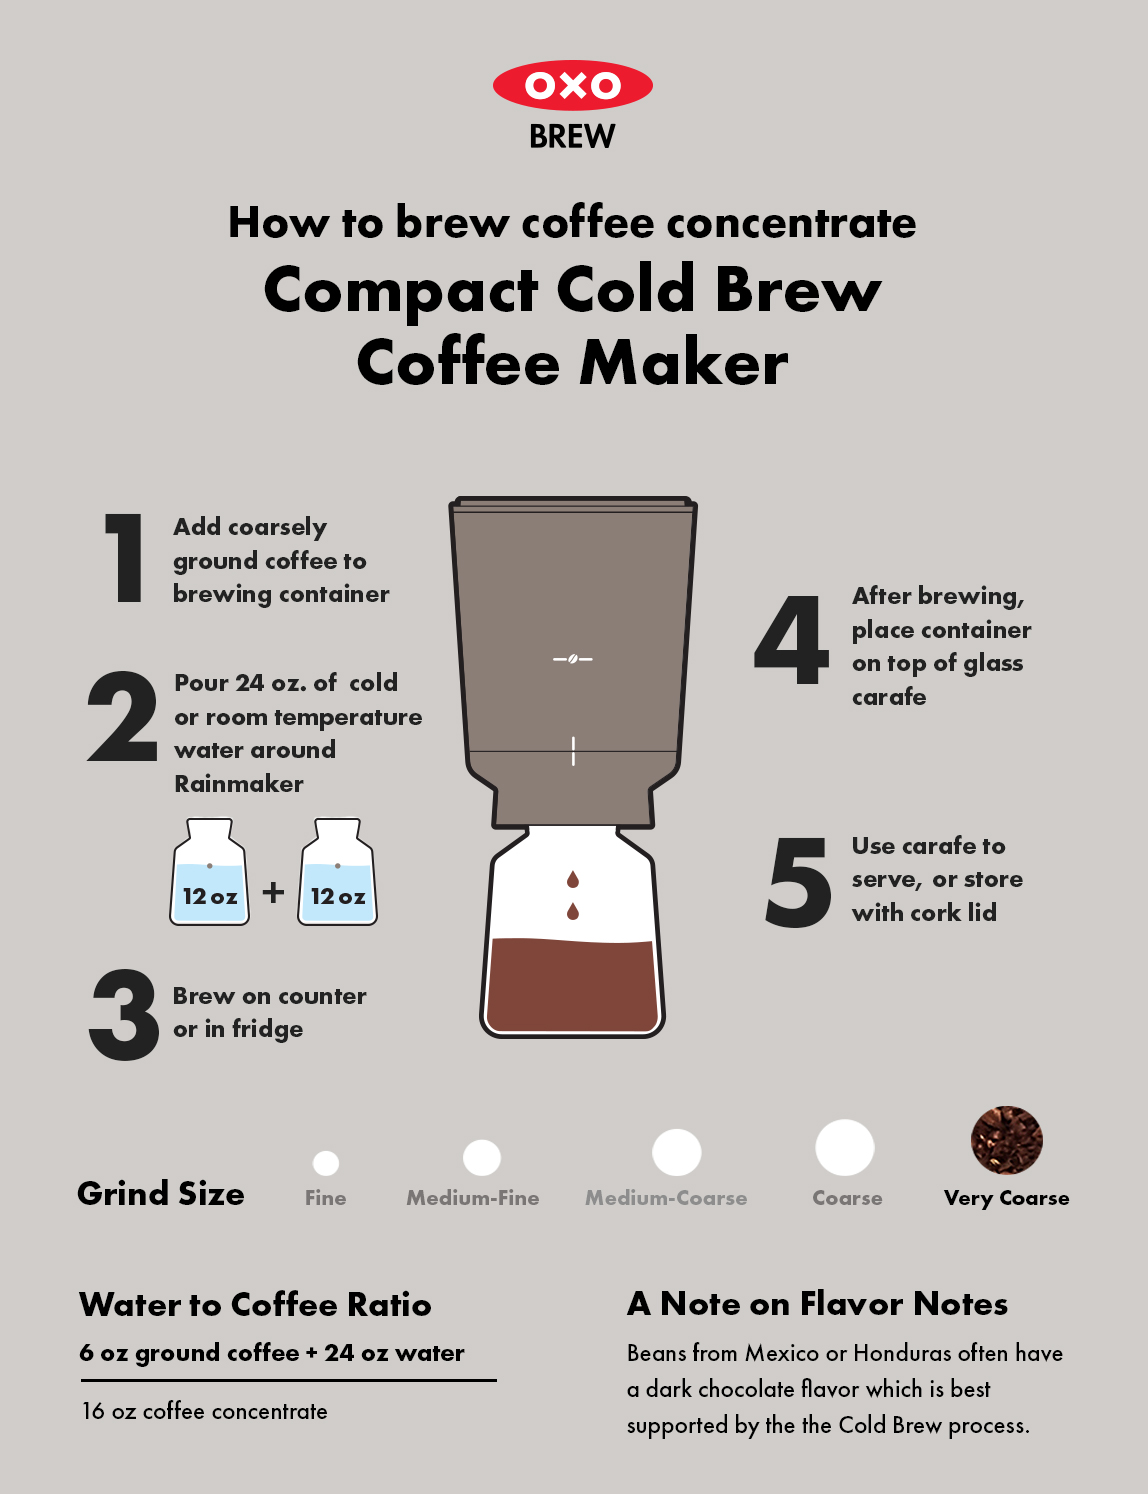 How to Make Cold Brew Coffee with the OXO Compact Cold Brew Coffee Maker